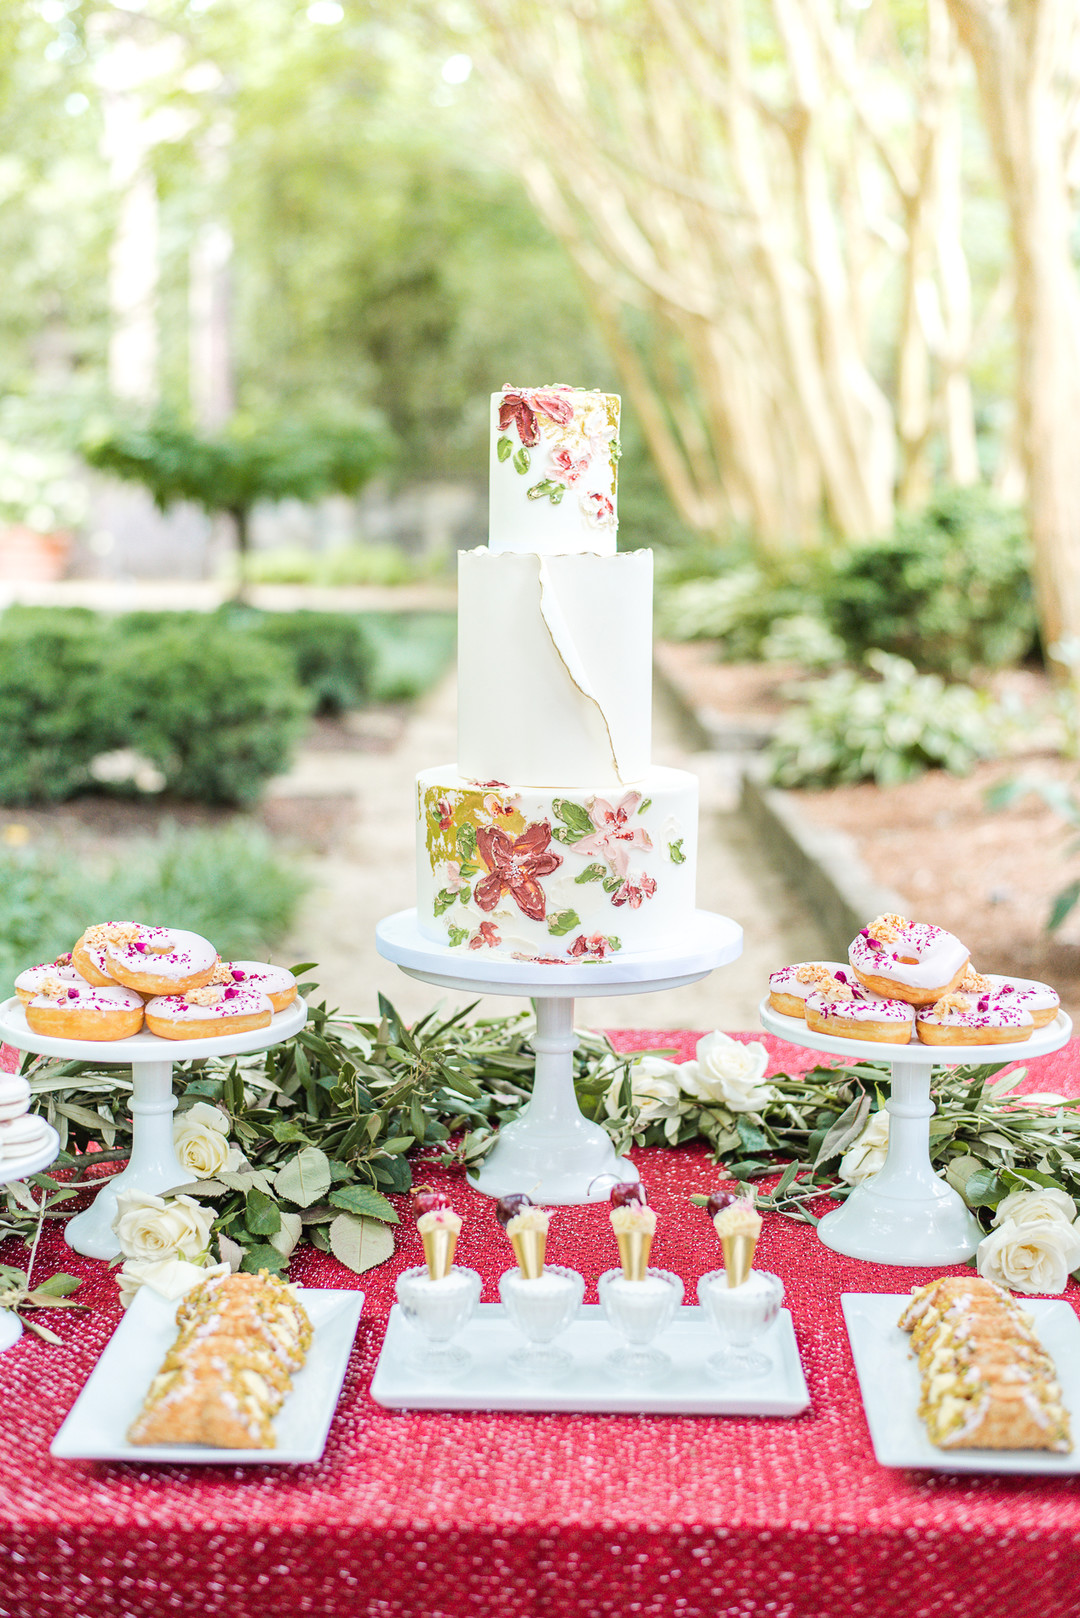 red and green floral cake surrounded by desserts on a red tablecloth